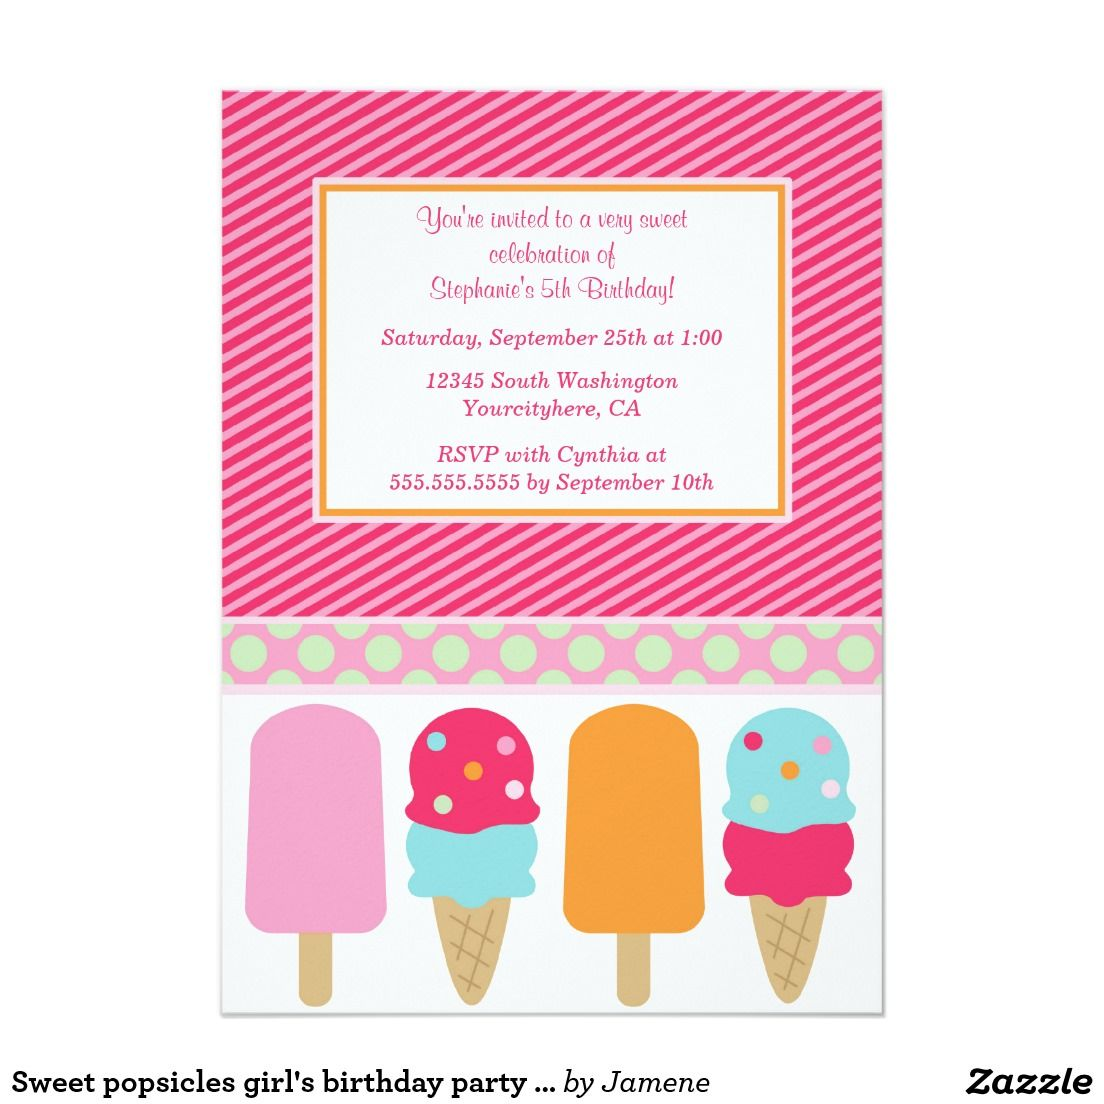 Candy popsicle invitation template free google search sweet candy popsicle invitation template free google search girl first birthdaygirls monicamarmolfo Choice Image